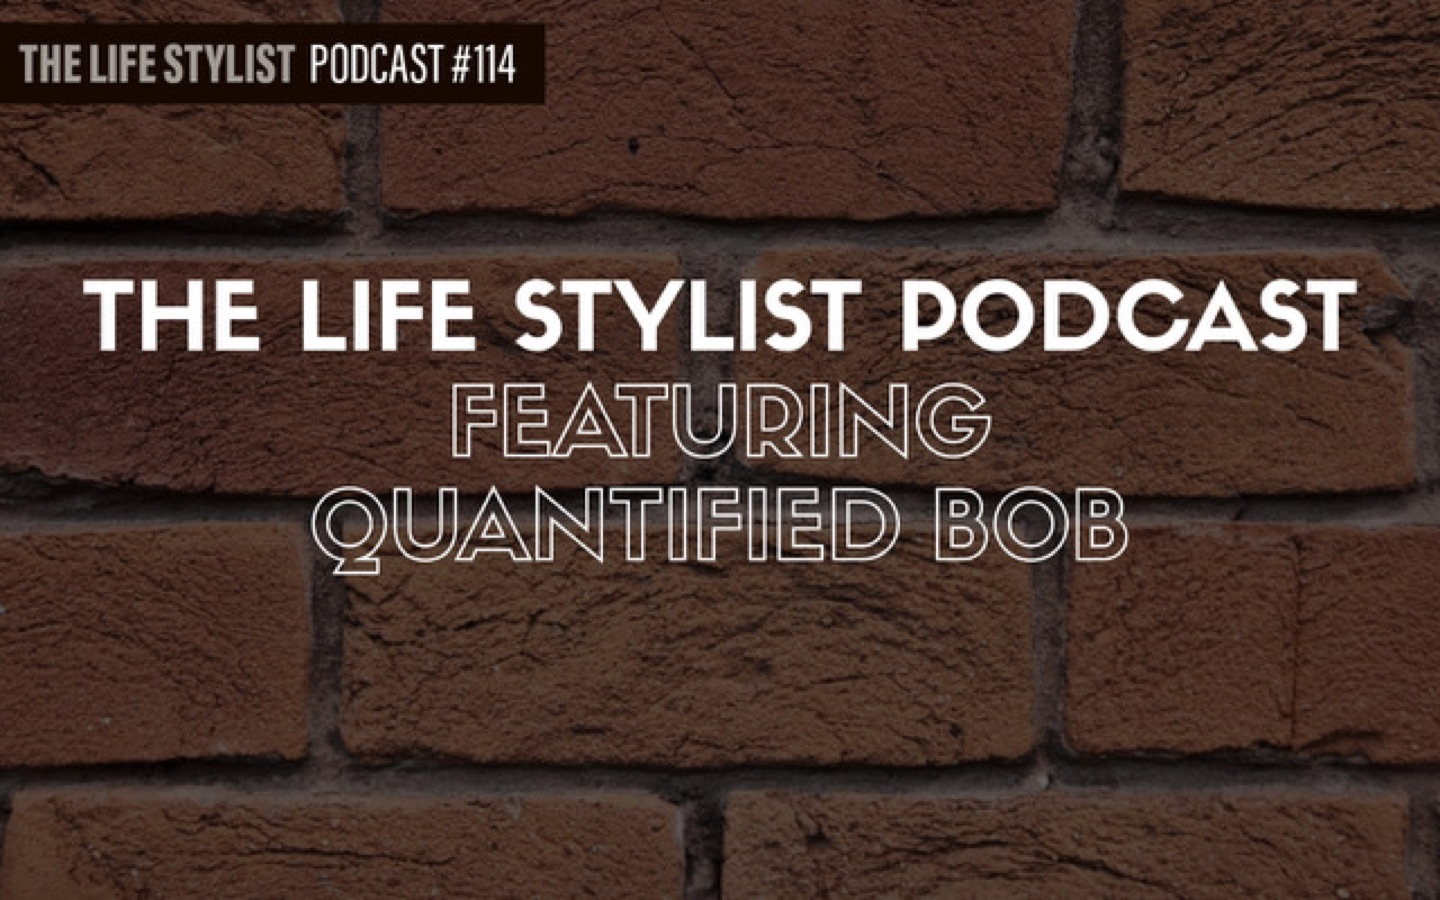 The Life Stylist Podcast with Quantified Bob